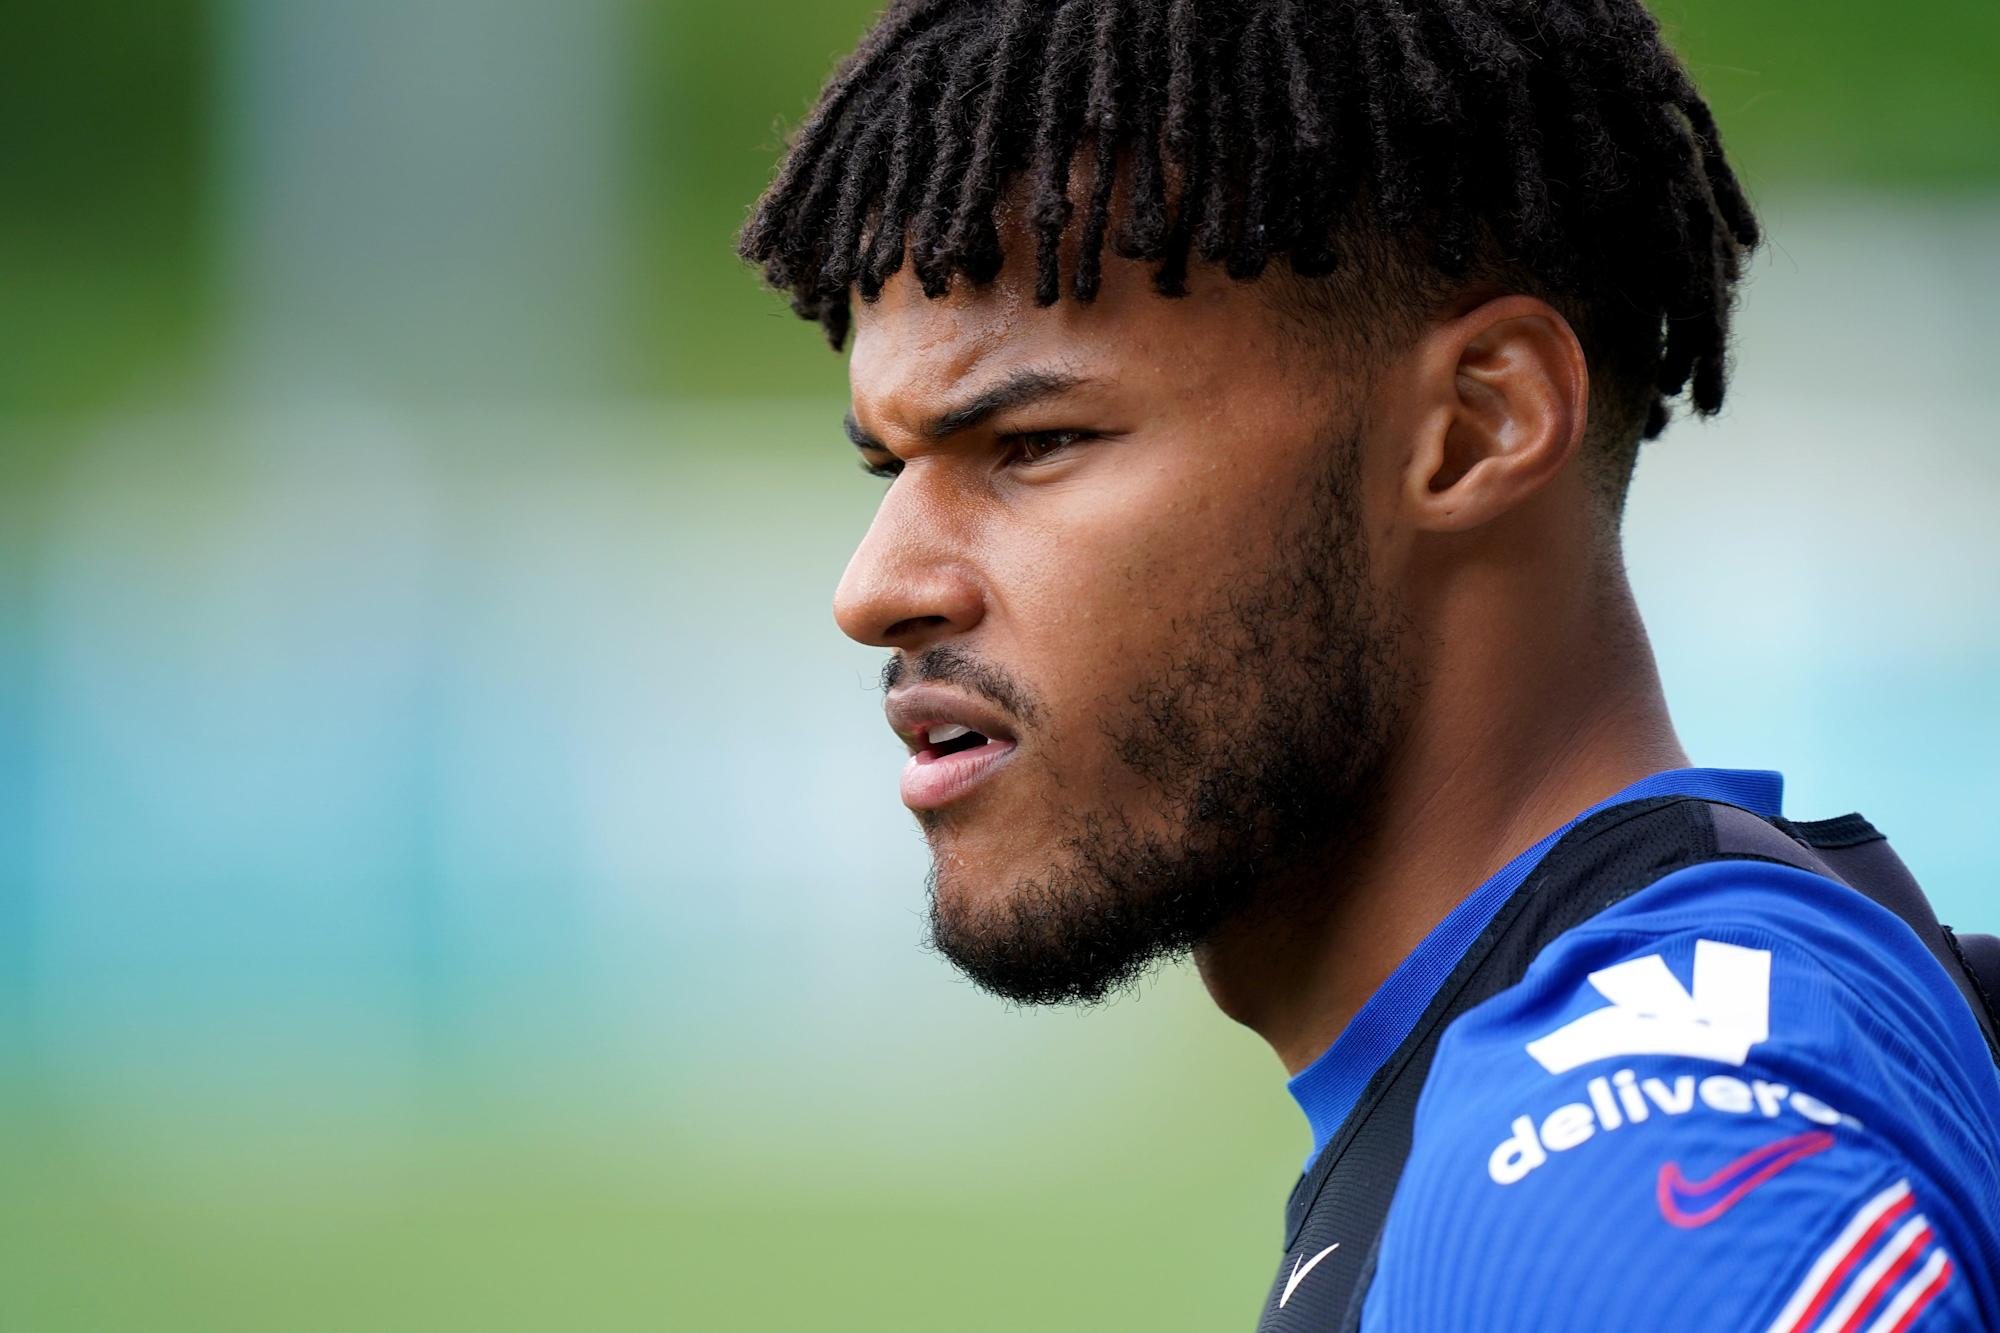 England's Tyrone Mings hits out at Priti Patel over 'gesture politics' claim after team faces racist abuse